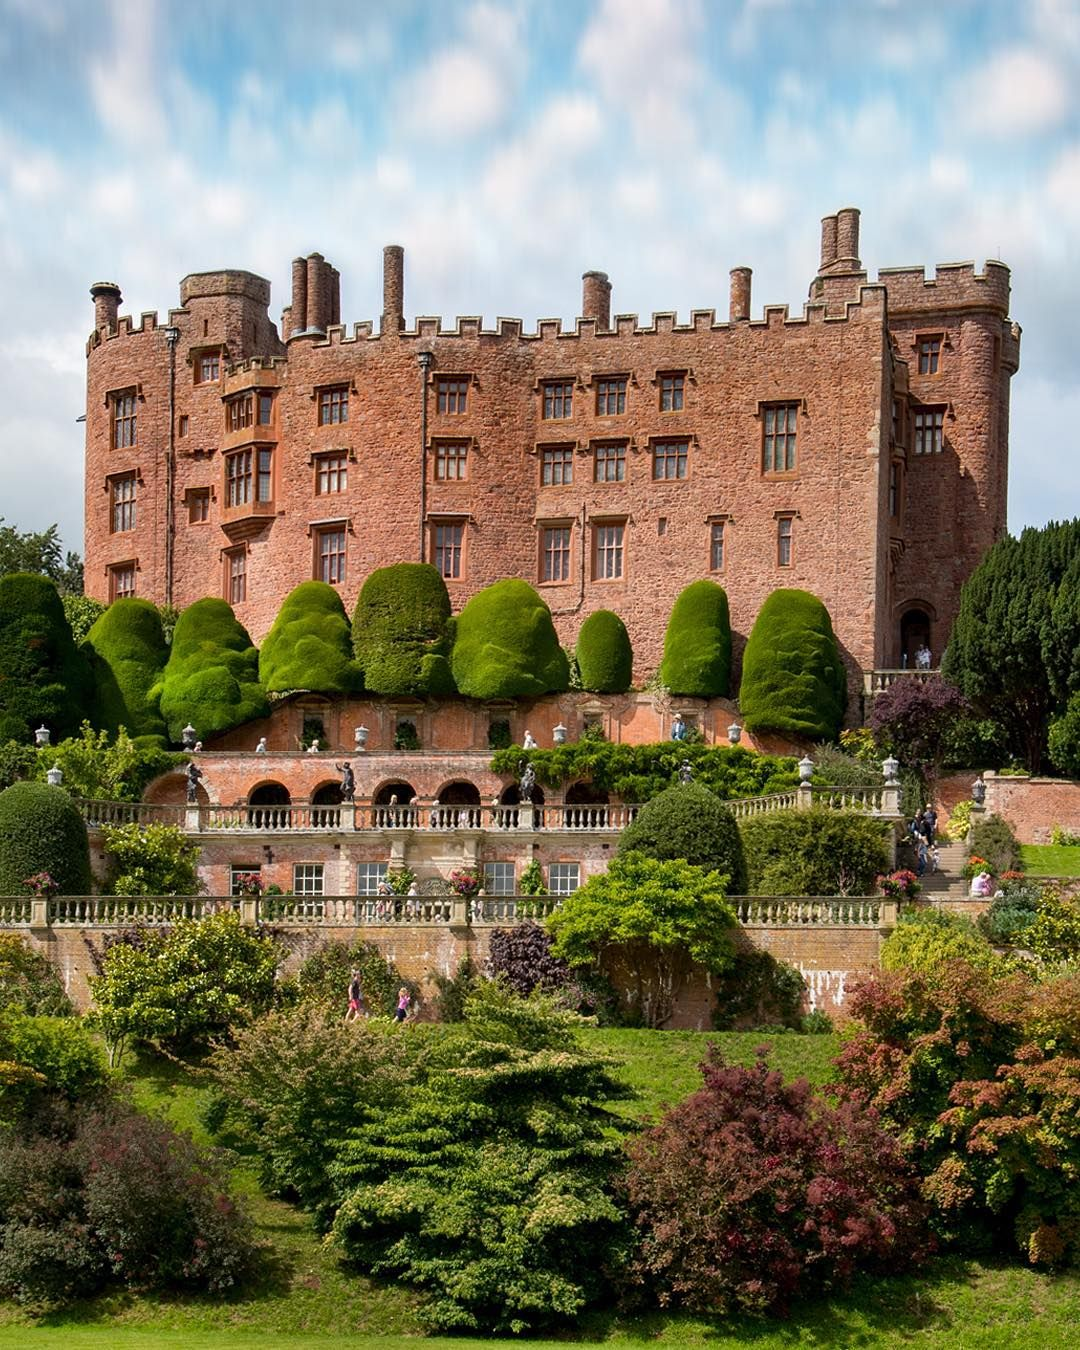 Powis Castle and Gardens in Wales | photosofbritain on instagram ...